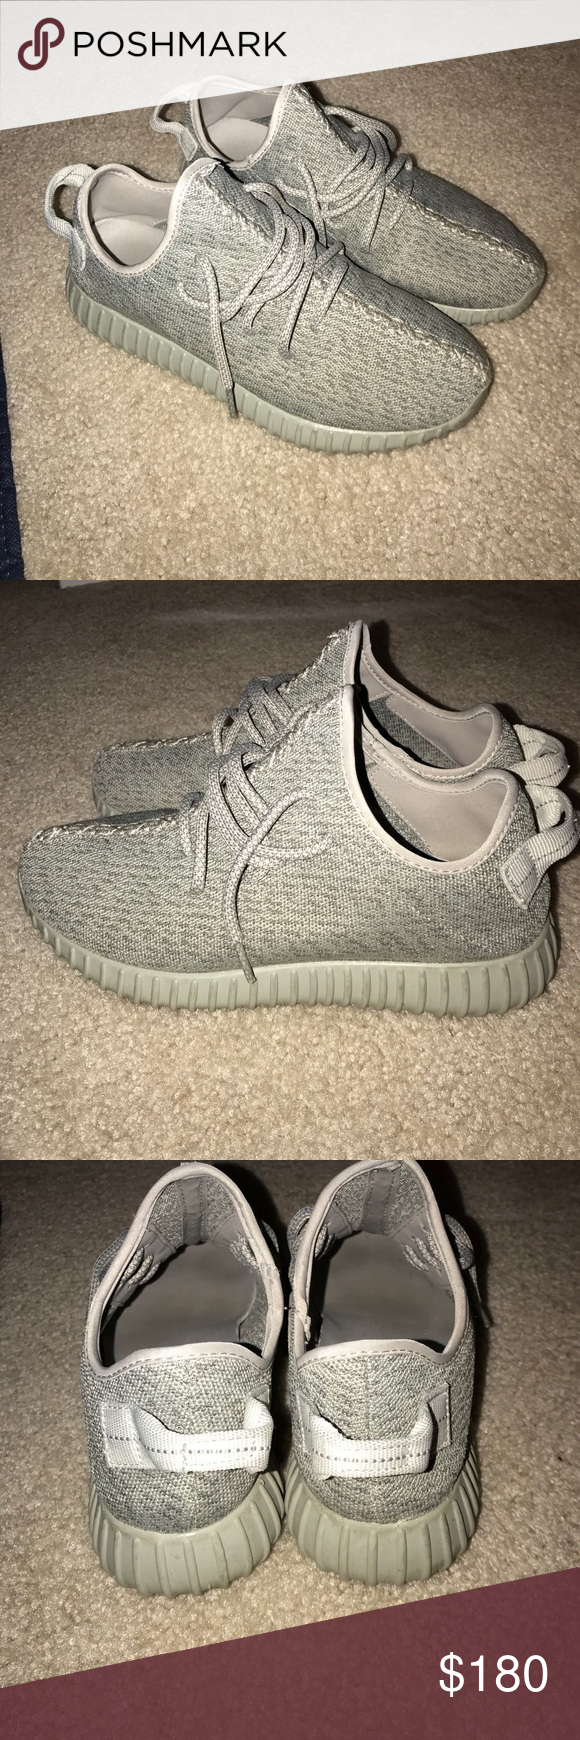 Used Mens Adidas Yeezy Boost 350